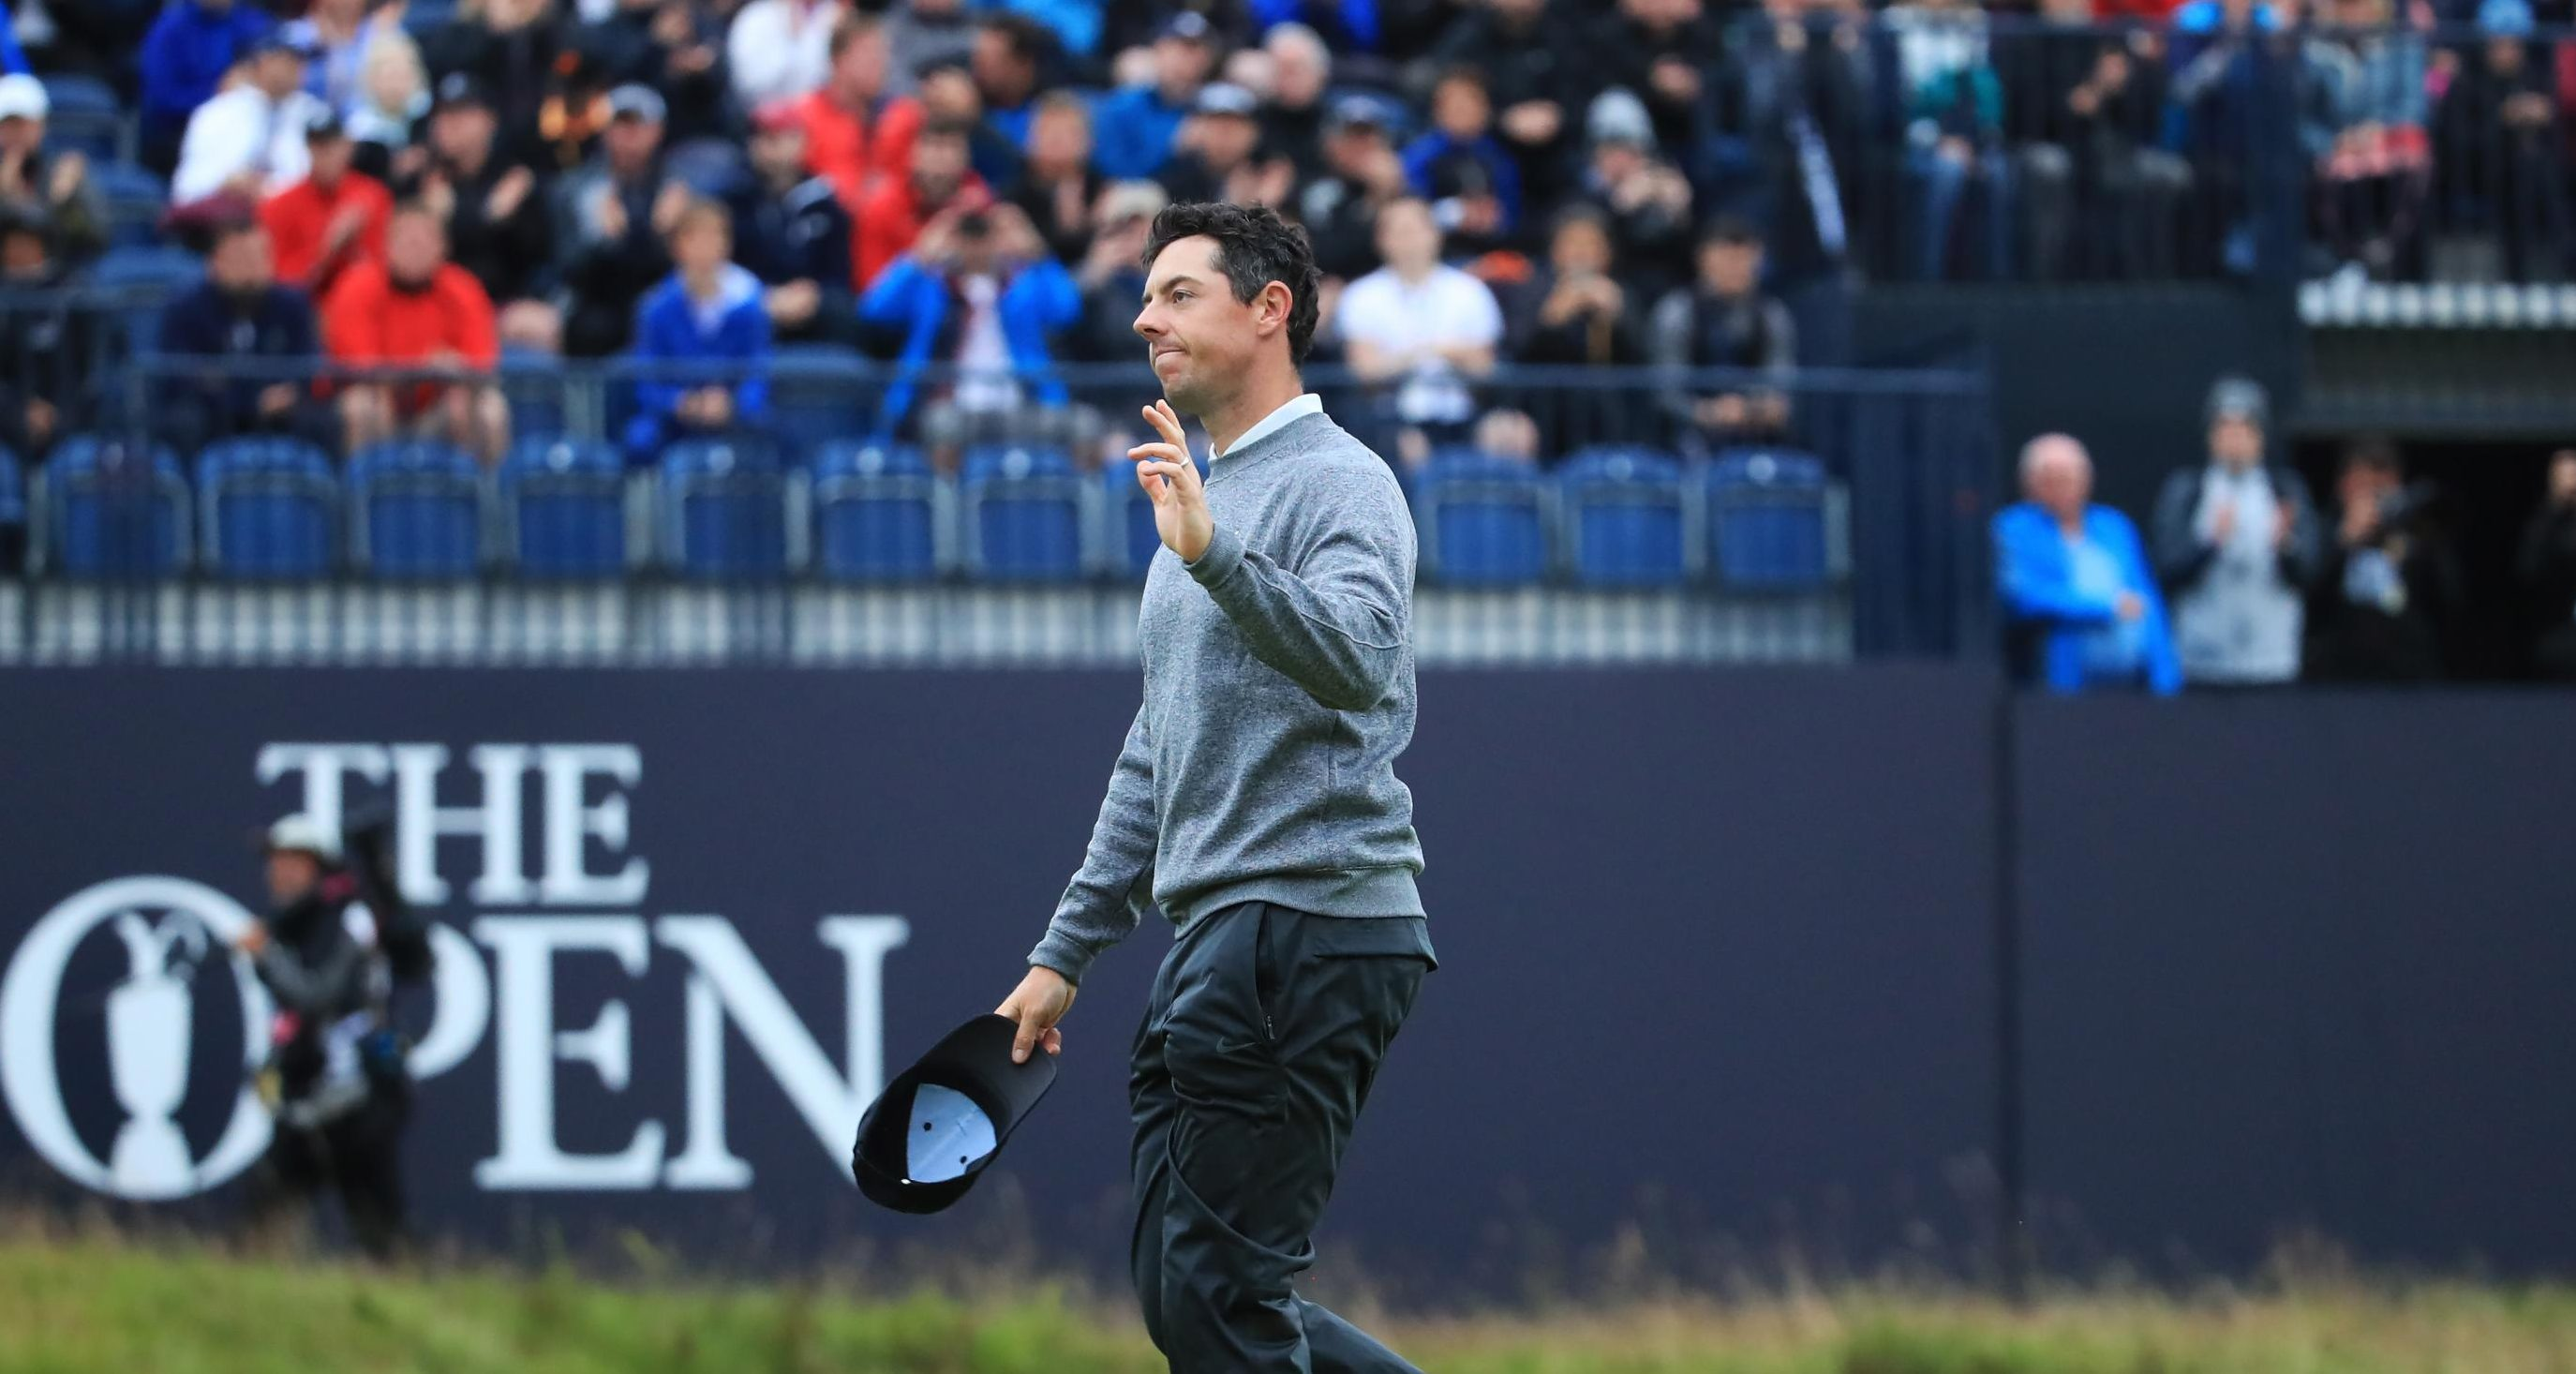 Tiger Woods-Rory McIlroy-Phil Mickelson-Brooks Koepka-Tommy Fleetwood-2019 British Open-updated British Open odds-